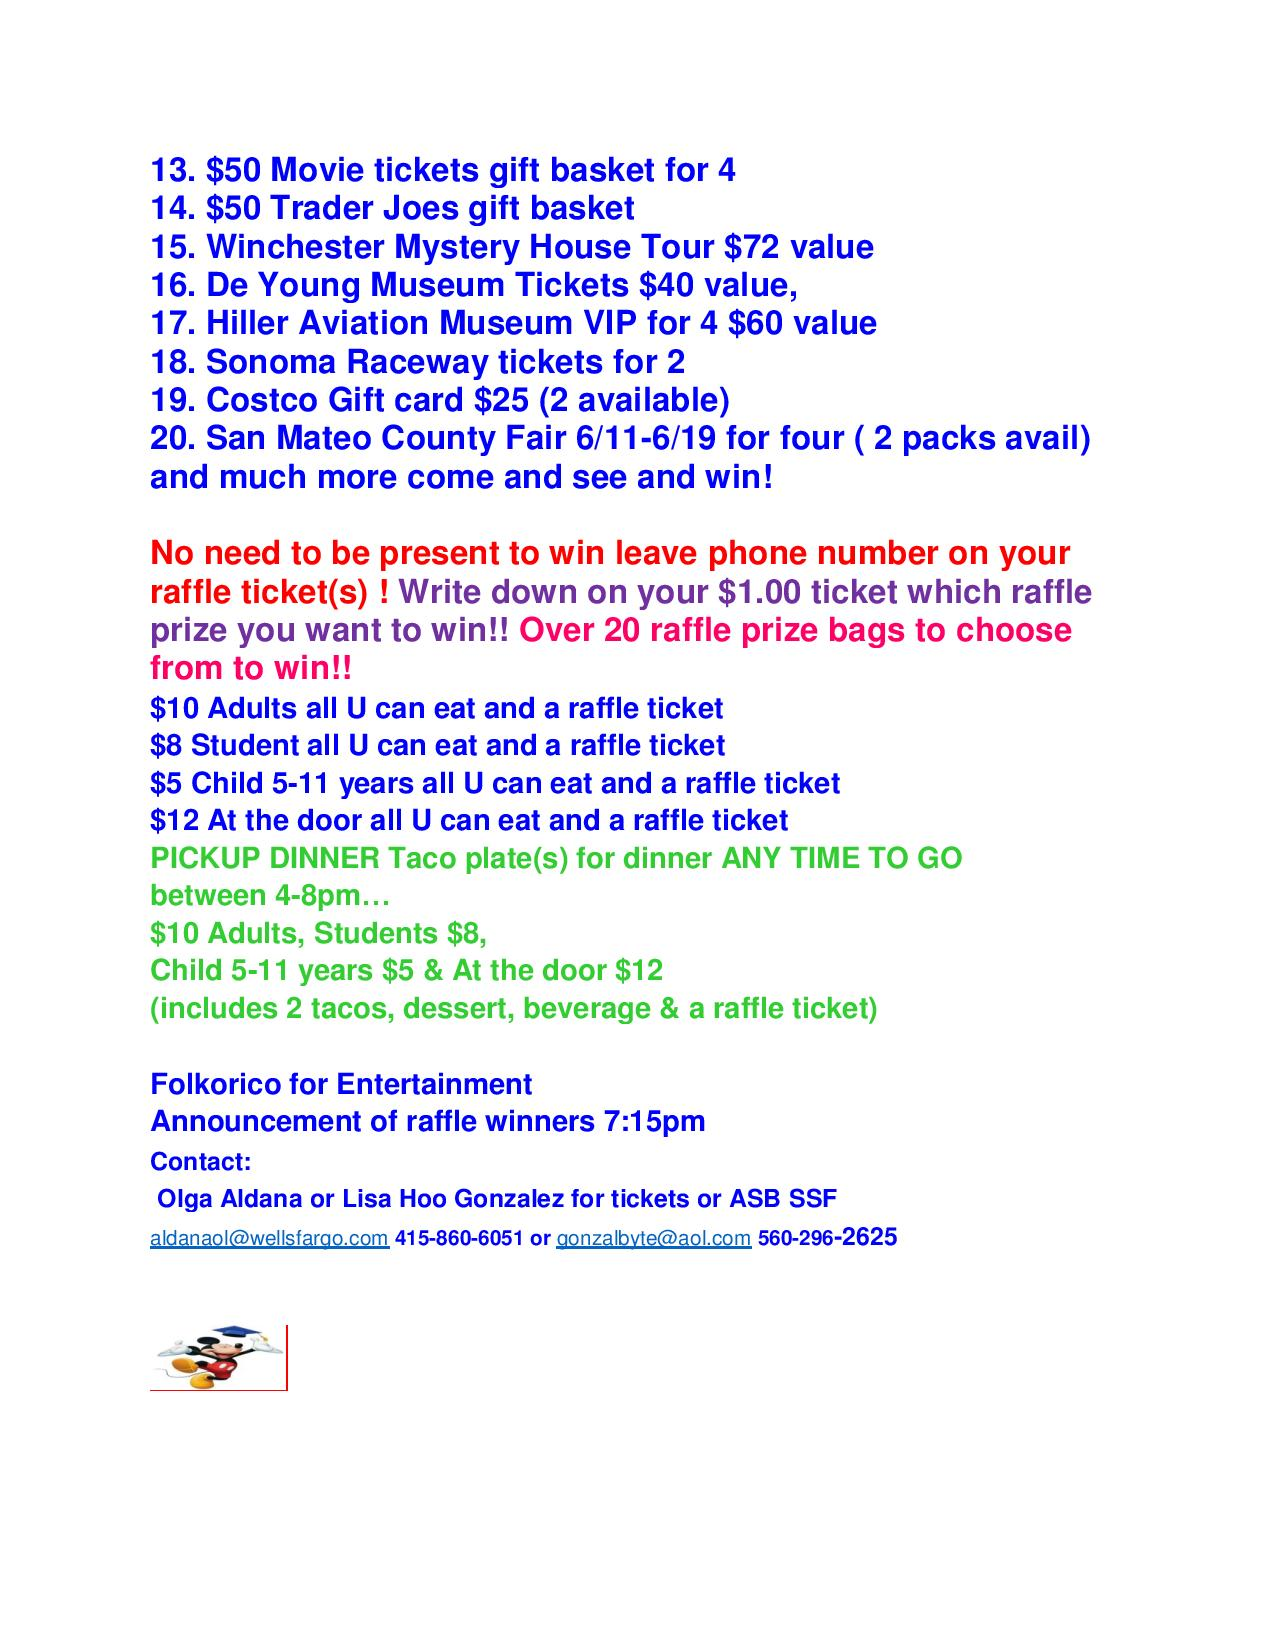 taco all u can eat raffle ticket items list april 19 2016 revised!!!!!!!#-page-002